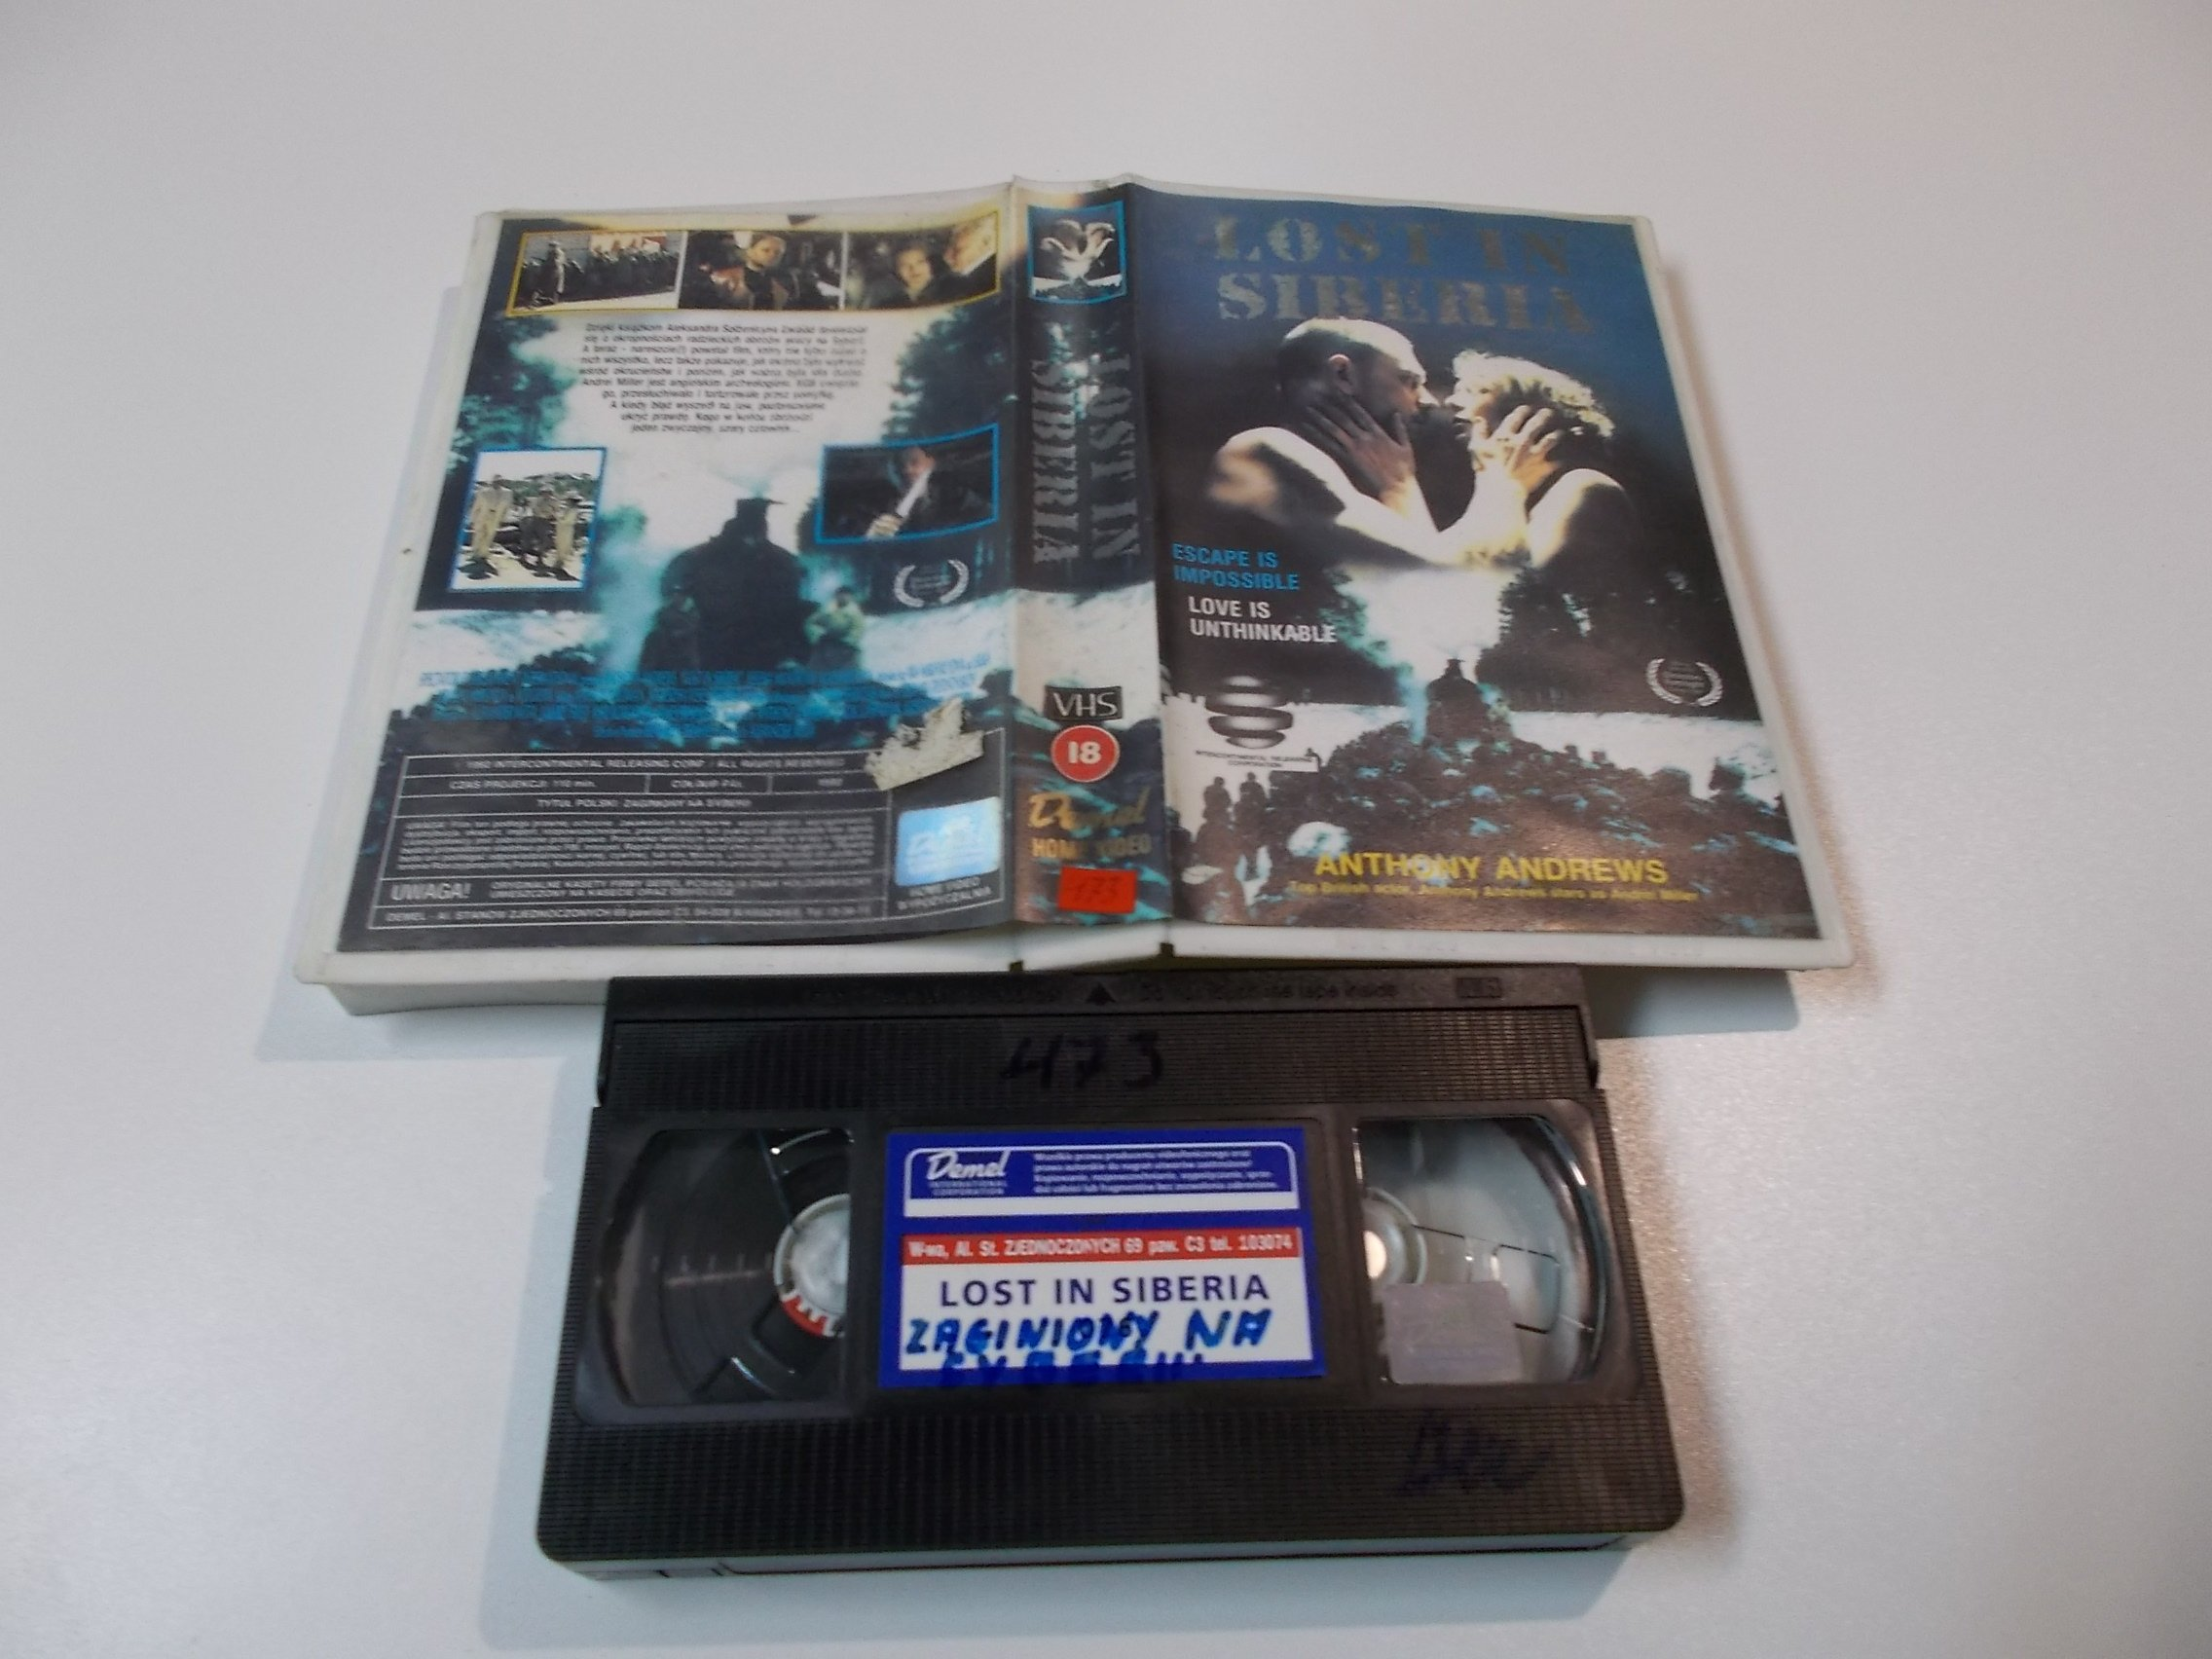 LOST IN SIBERIA - kaseta Video VHS - 1453 Sklep